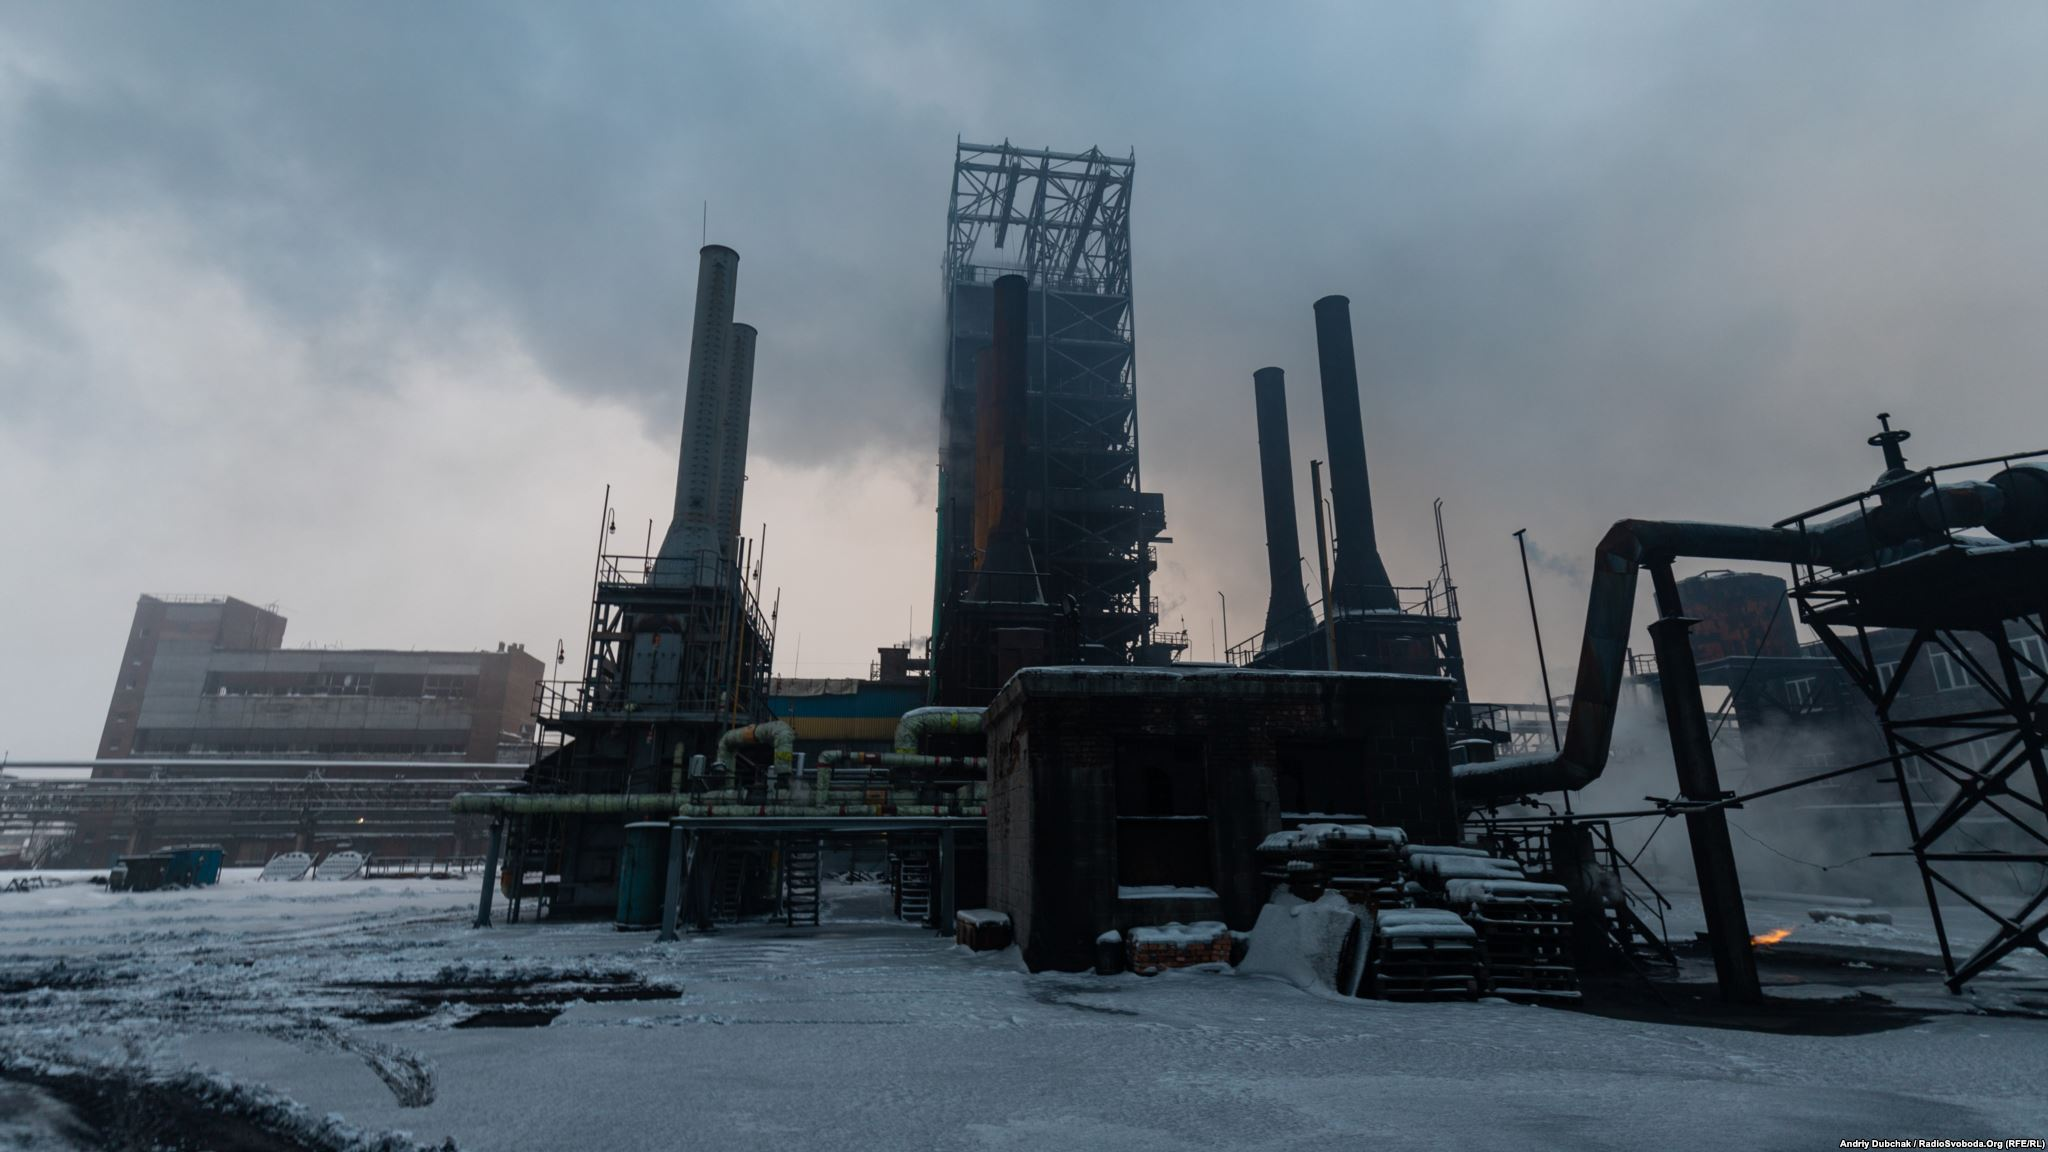 Avdiivka Coke Plant photo by Andriy Dubchak